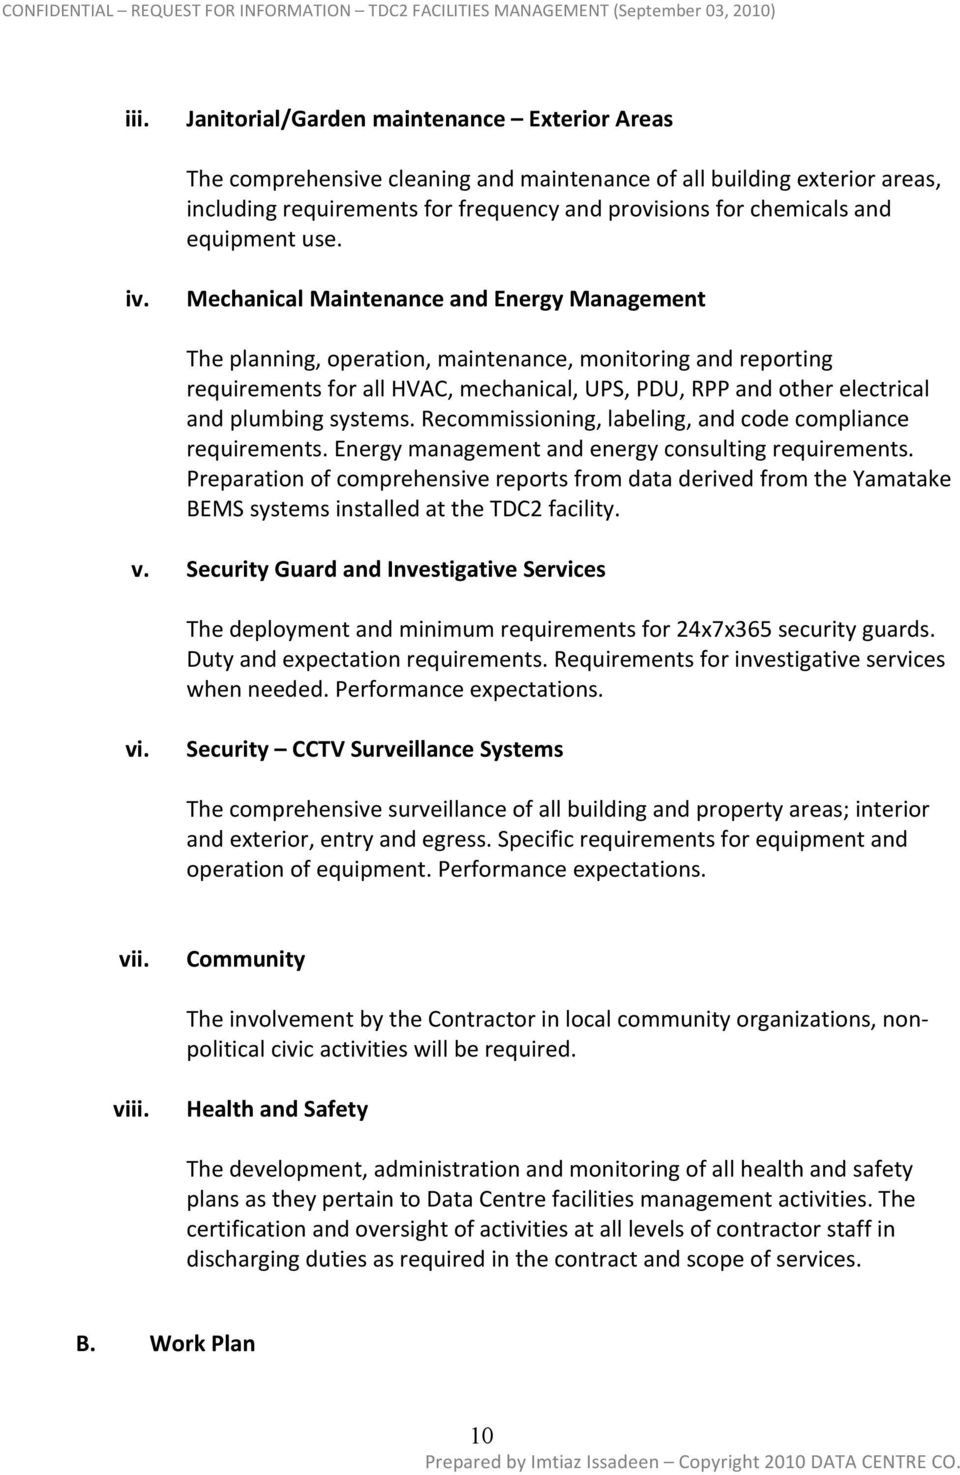 Mechanical Maintenance and Energy Management The planning, operation, maintenance, monitoring and reporting requirements for all HVAC, mechanical, UPS, PDU, RPP and other electrical and plumbing